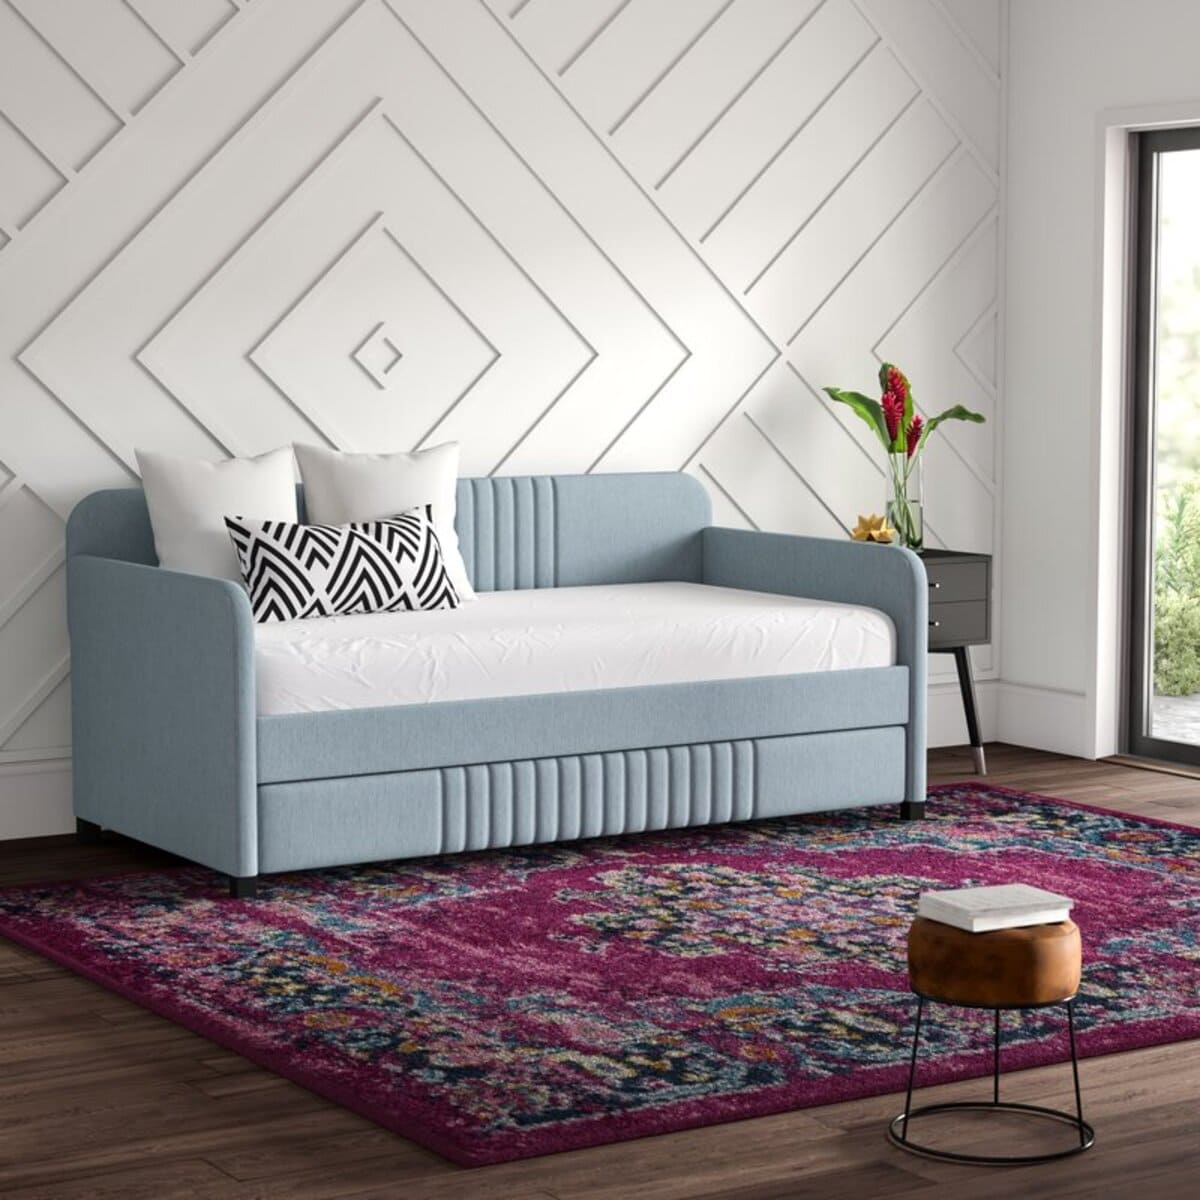 daybed 23 - 20 delightful daybeds that easily convert into comfortable beds